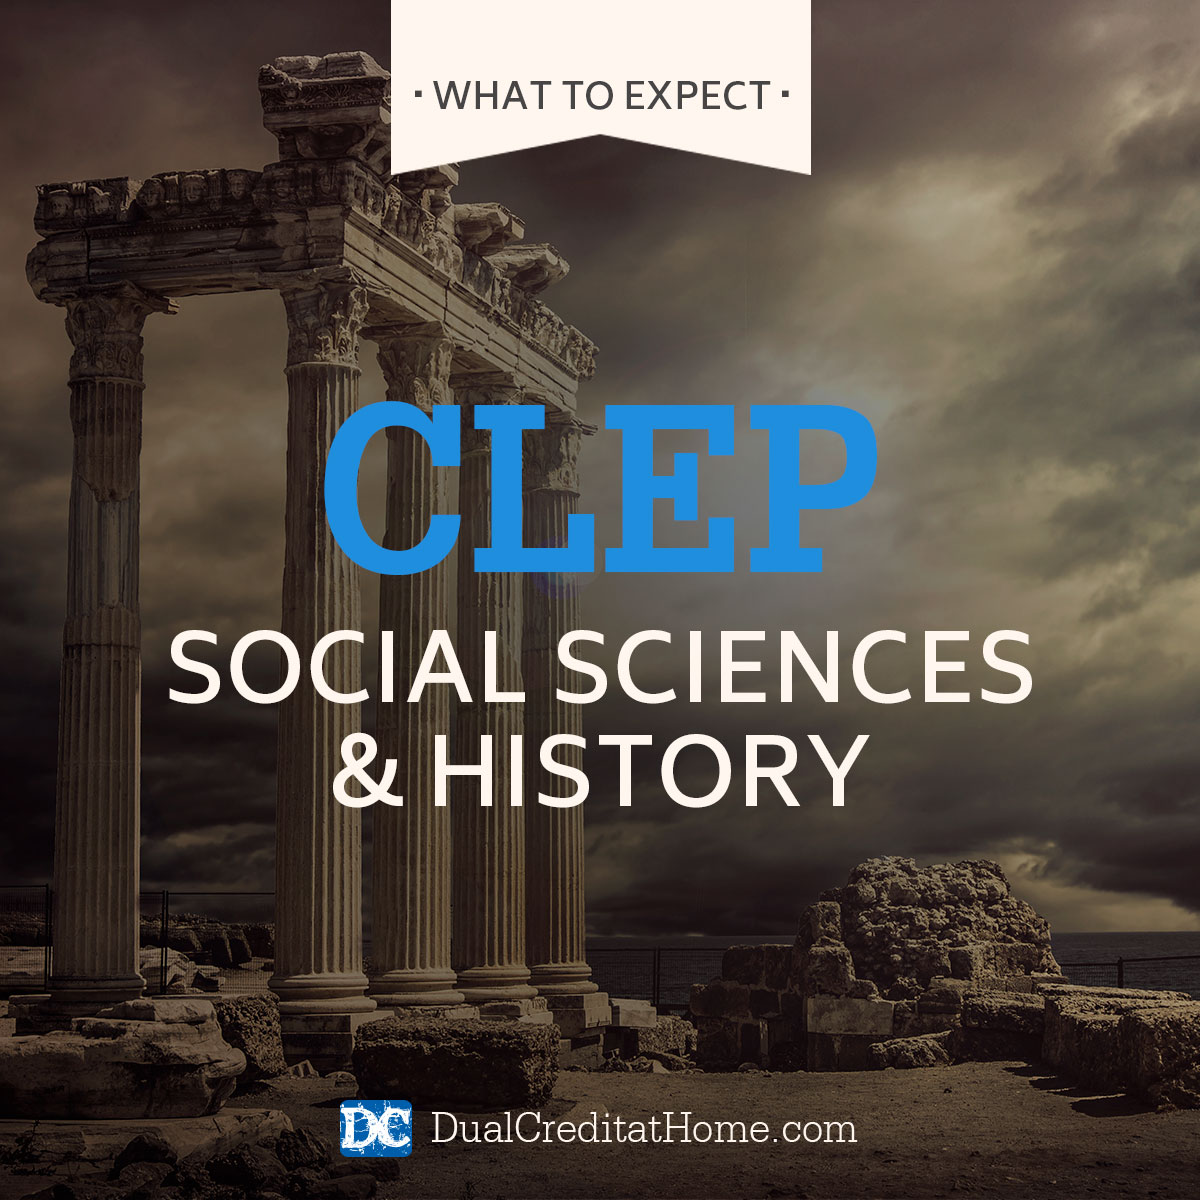 Social Sciences & History CLEP Exam